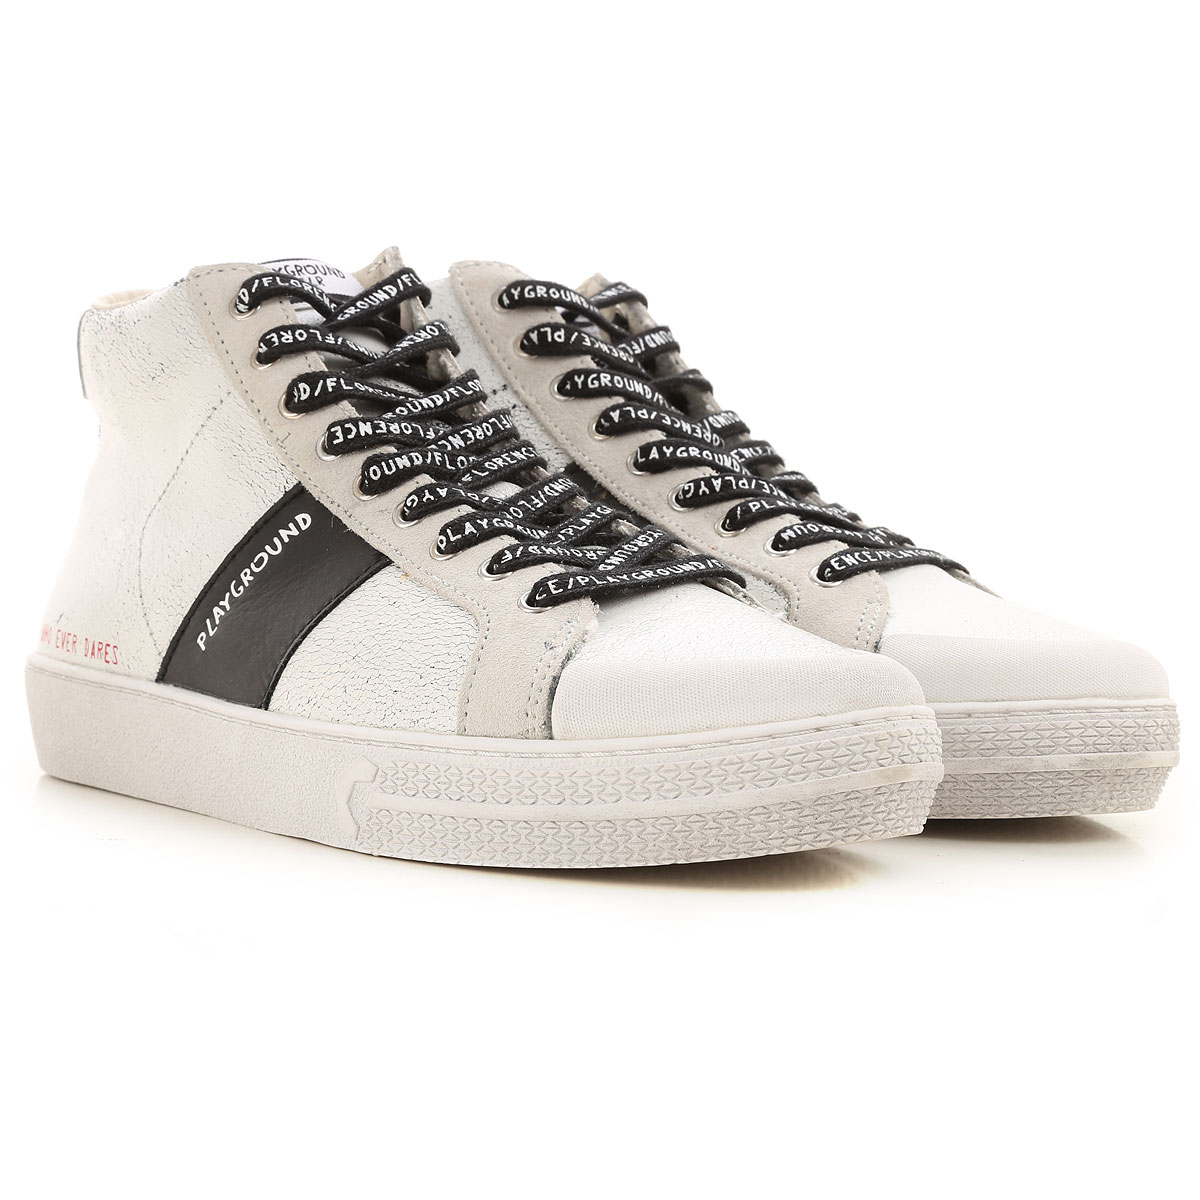 Moa Master of Arts Sneakers for Men On Sale, White, Leather, 2019, 10 11.5 7.5 9